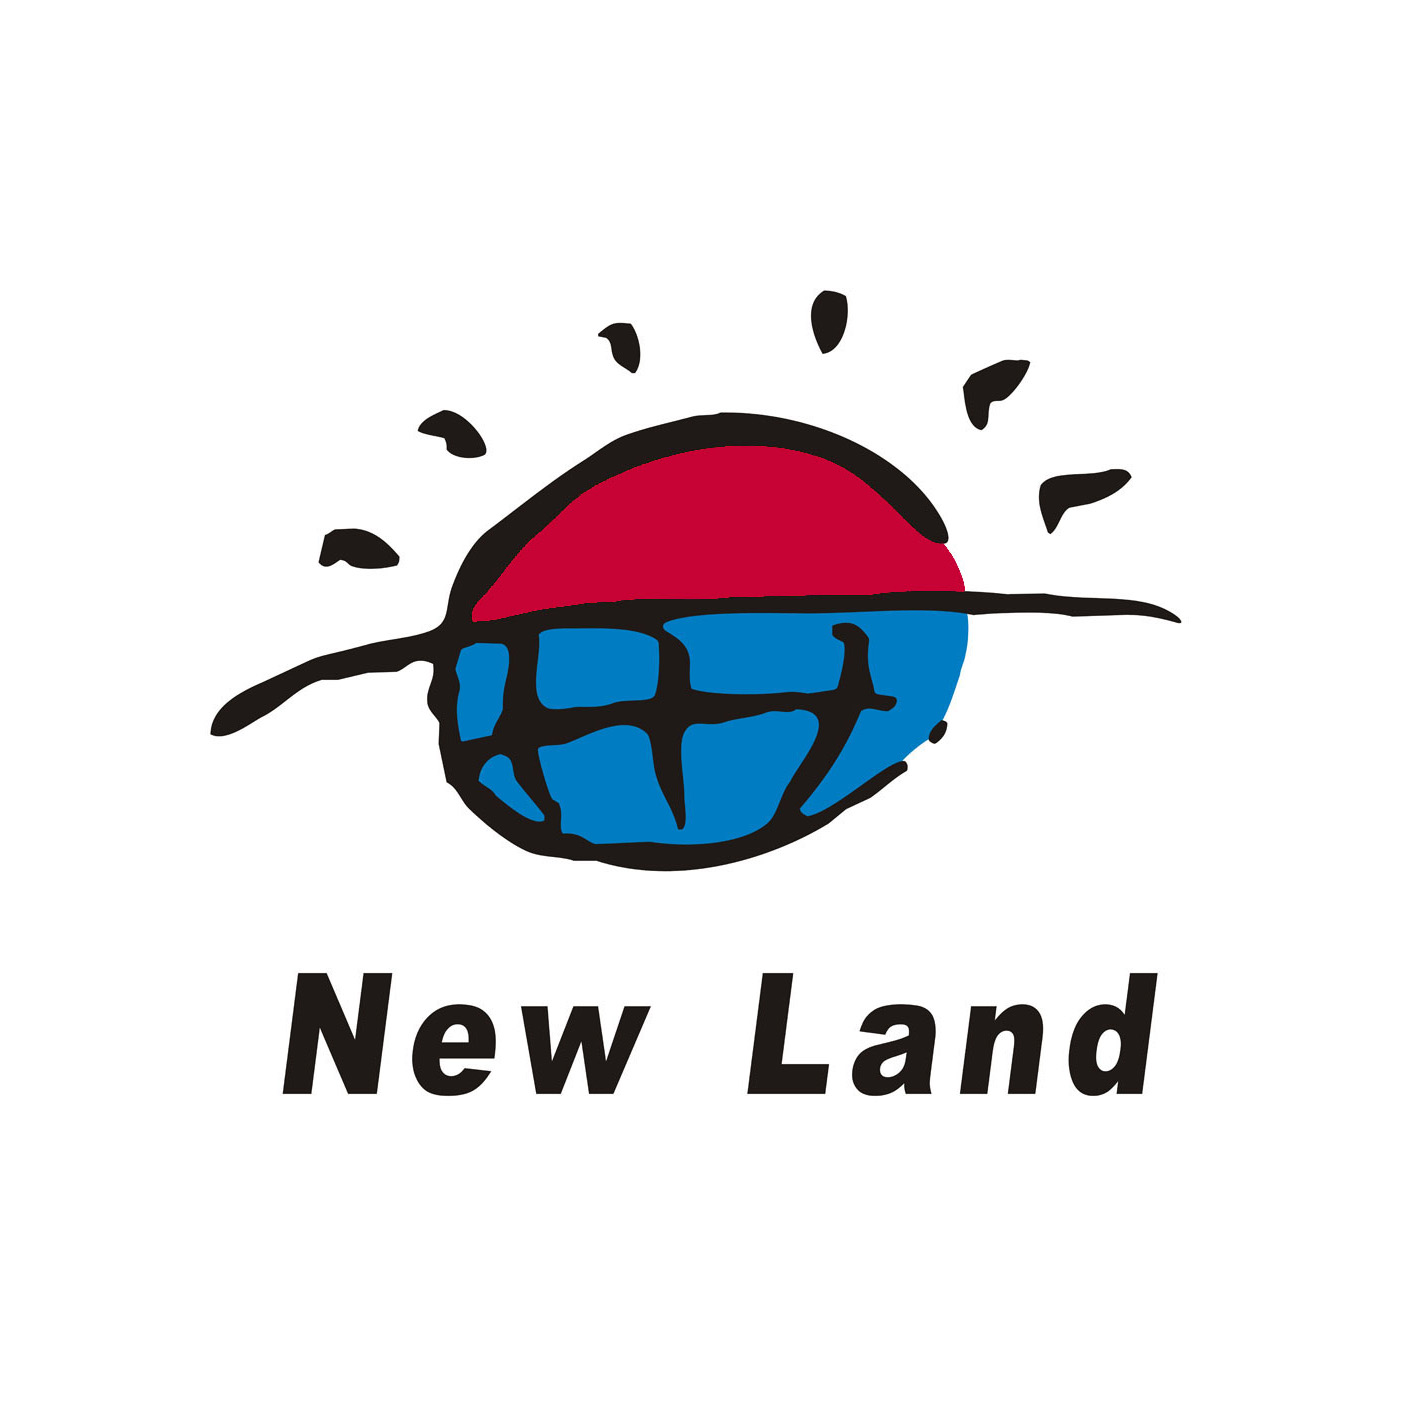 DEZHOU NEW LAND CO., LTD.